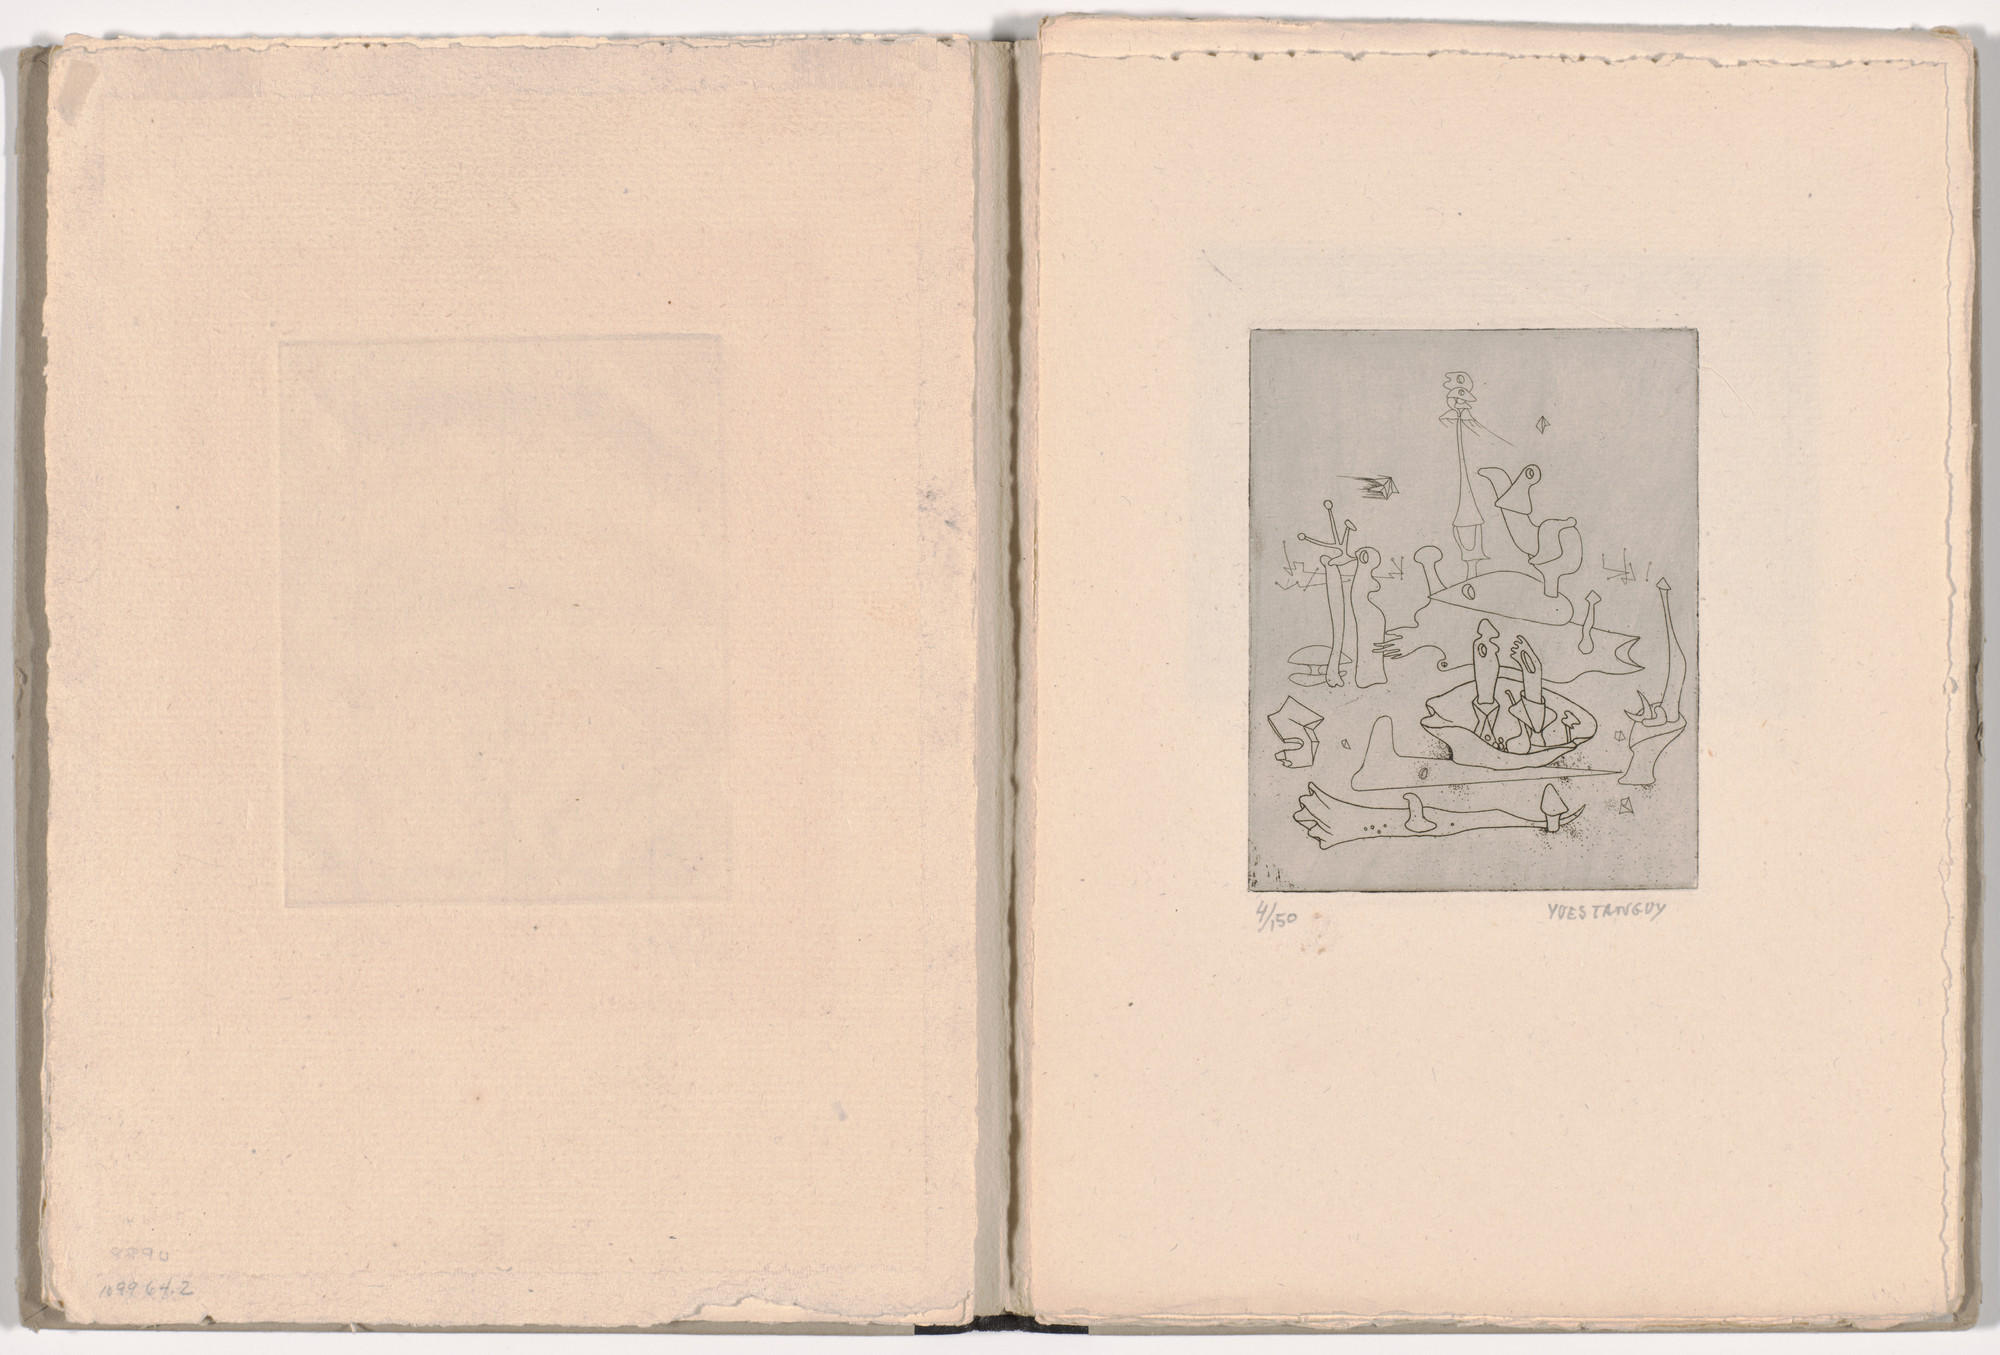 Yves Tanguy. Plate 3 from Solidarité (Solidarity). 1938